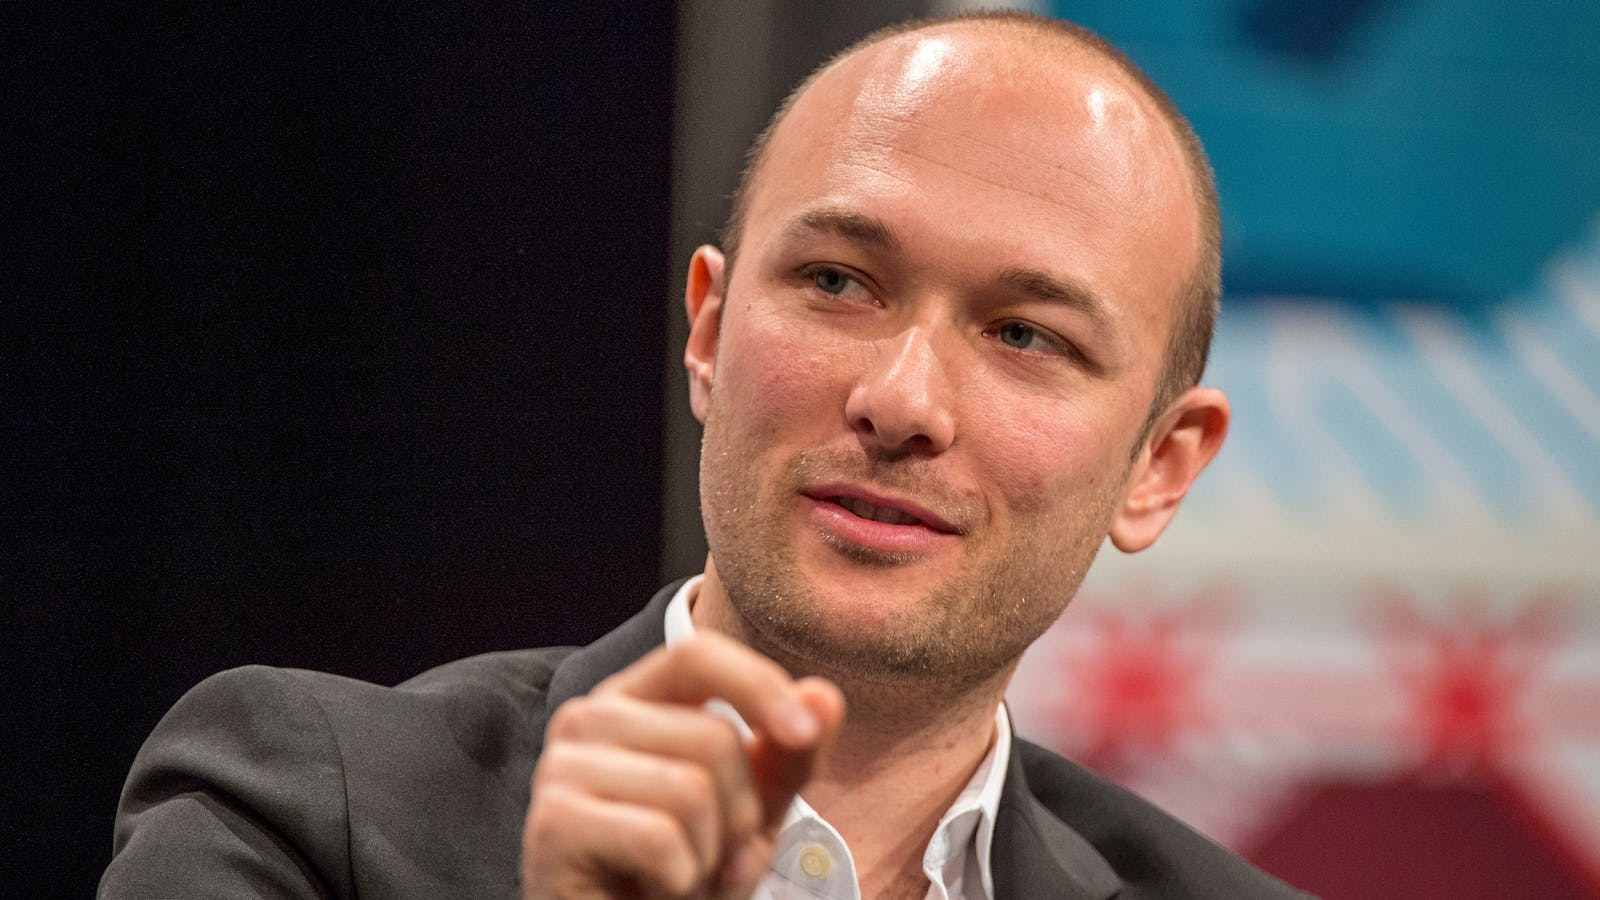 Lyft co-founder and CEO Logan Green. Photo by Bloomberg.